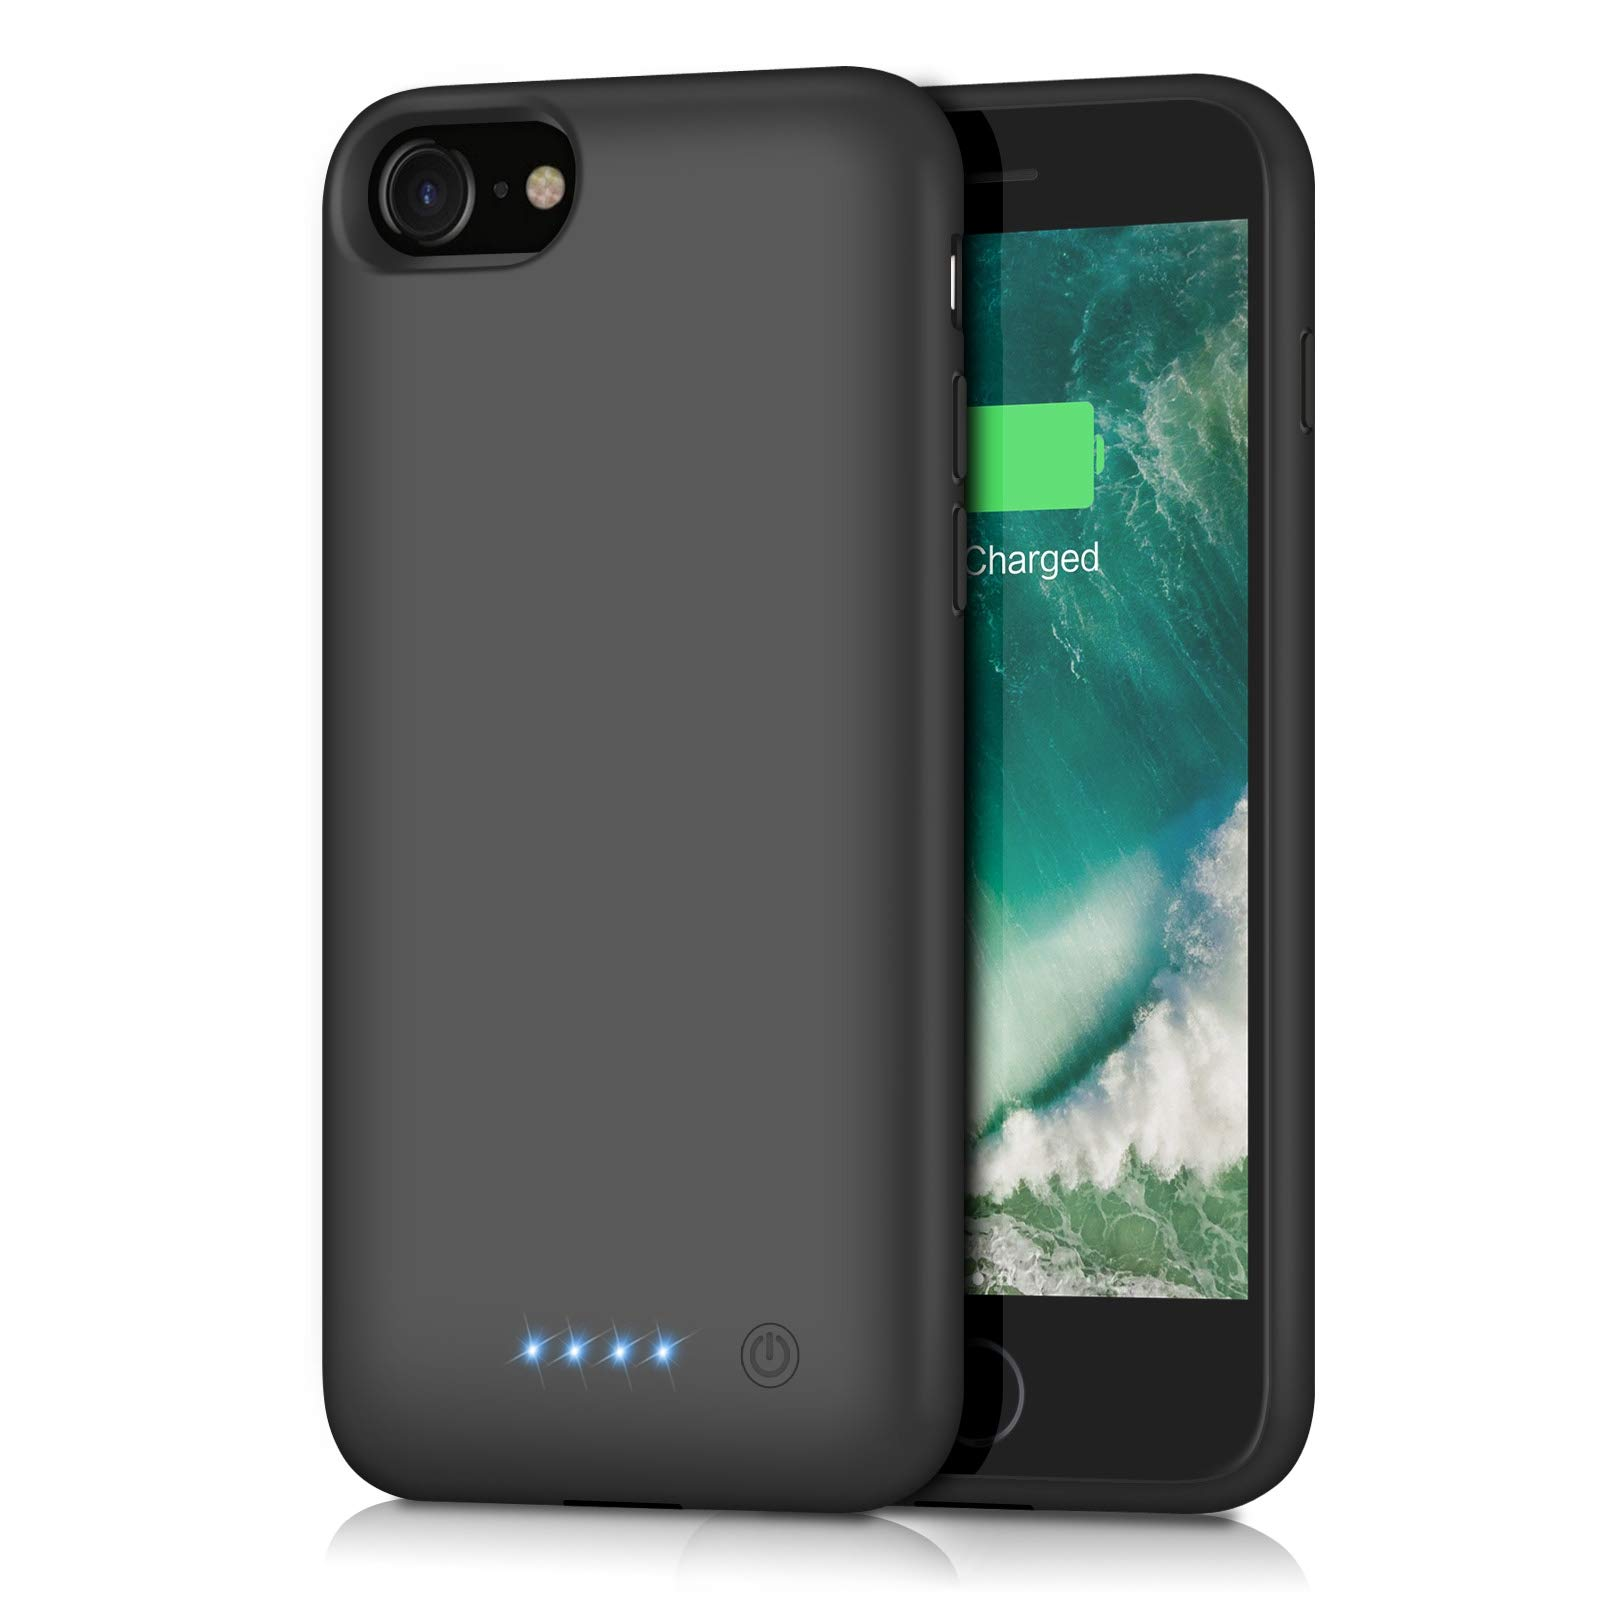 iPhone X Battery Case Qi Wireless Charging Compatible MFI 6000 mAh Slim Rechargeable Extended Protective Portable Charger for iPhone X Apple Certified Chip Black